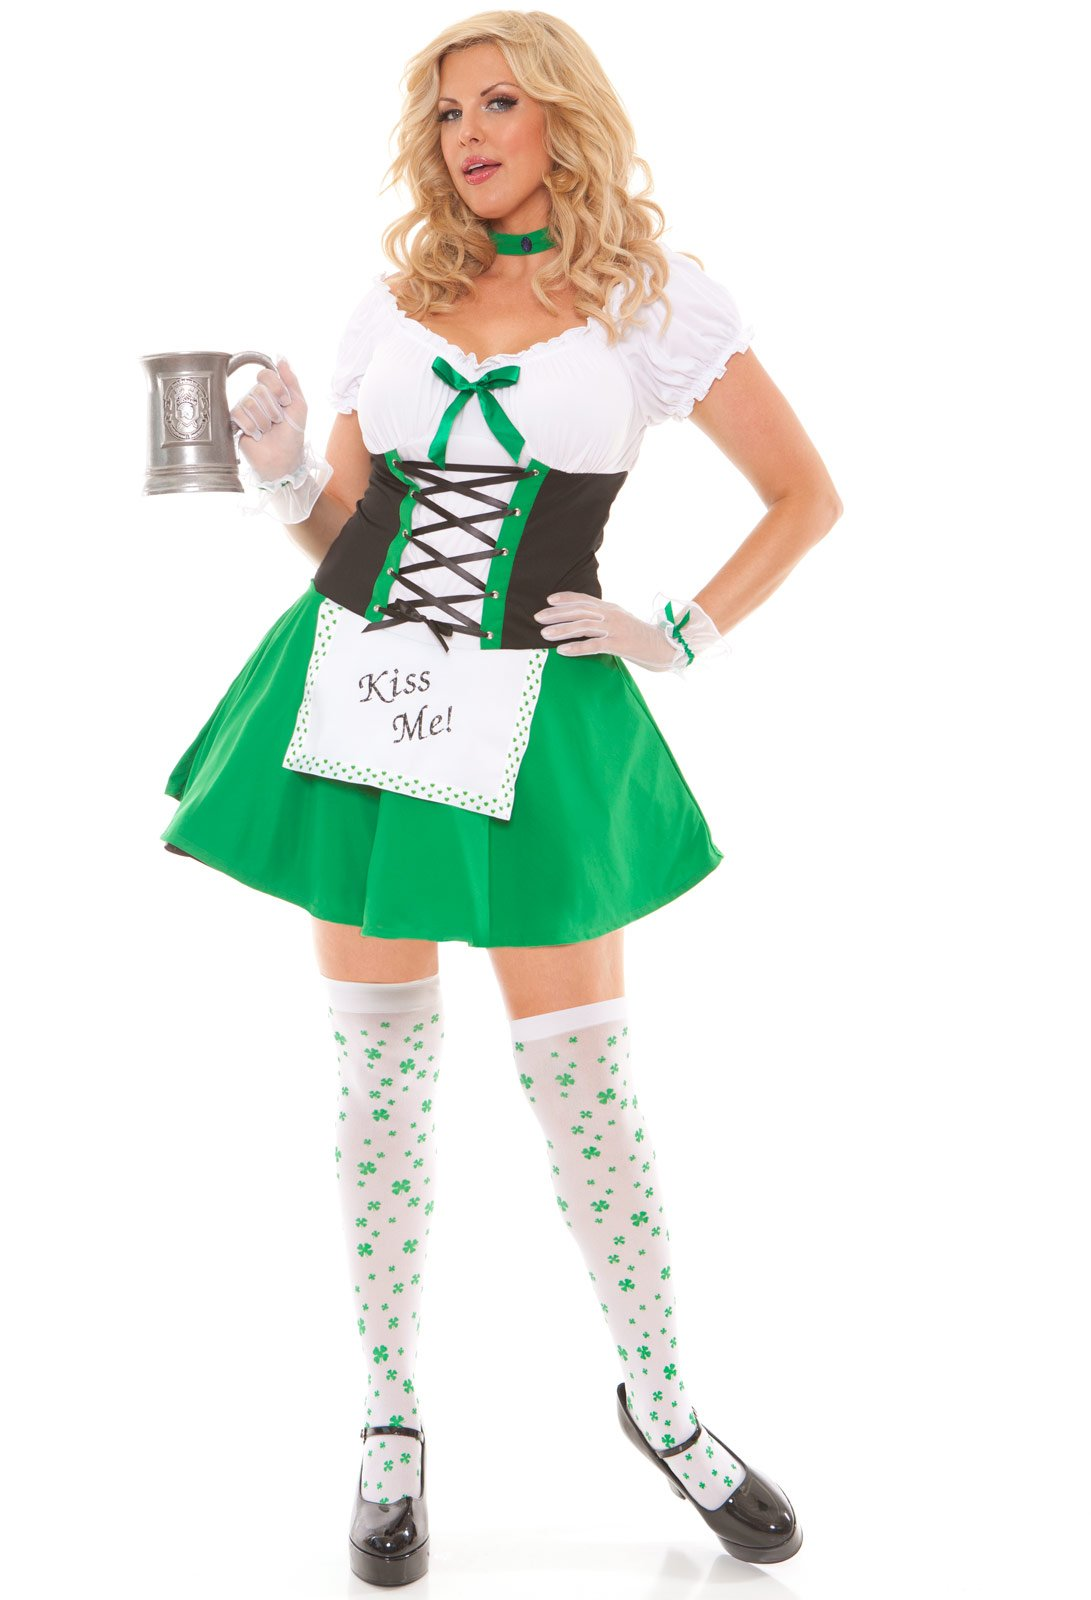 Kiss Me Cutie Adult Plus Costume